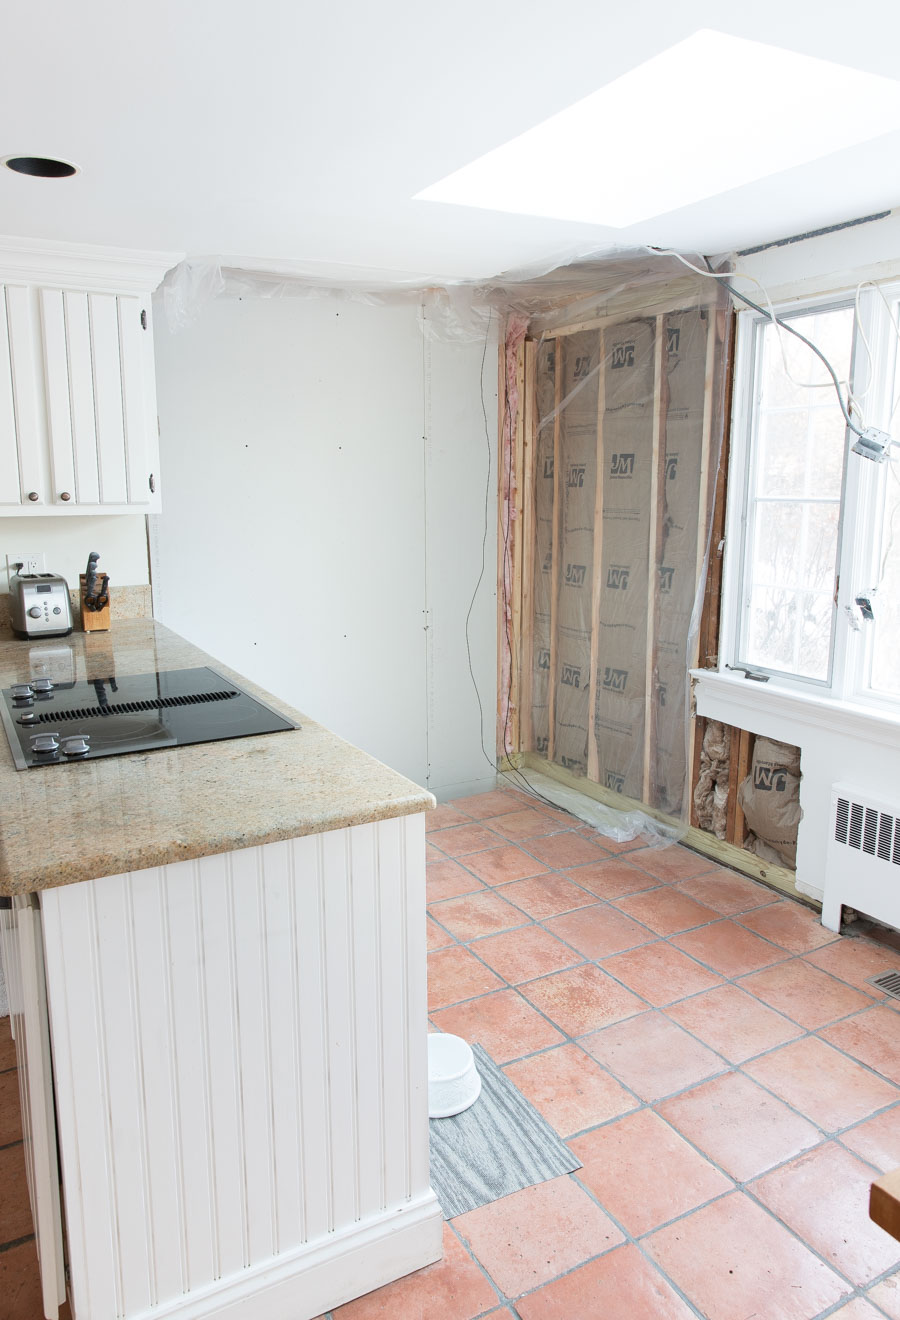 The first step of our kitchen renovation with fireplace removal